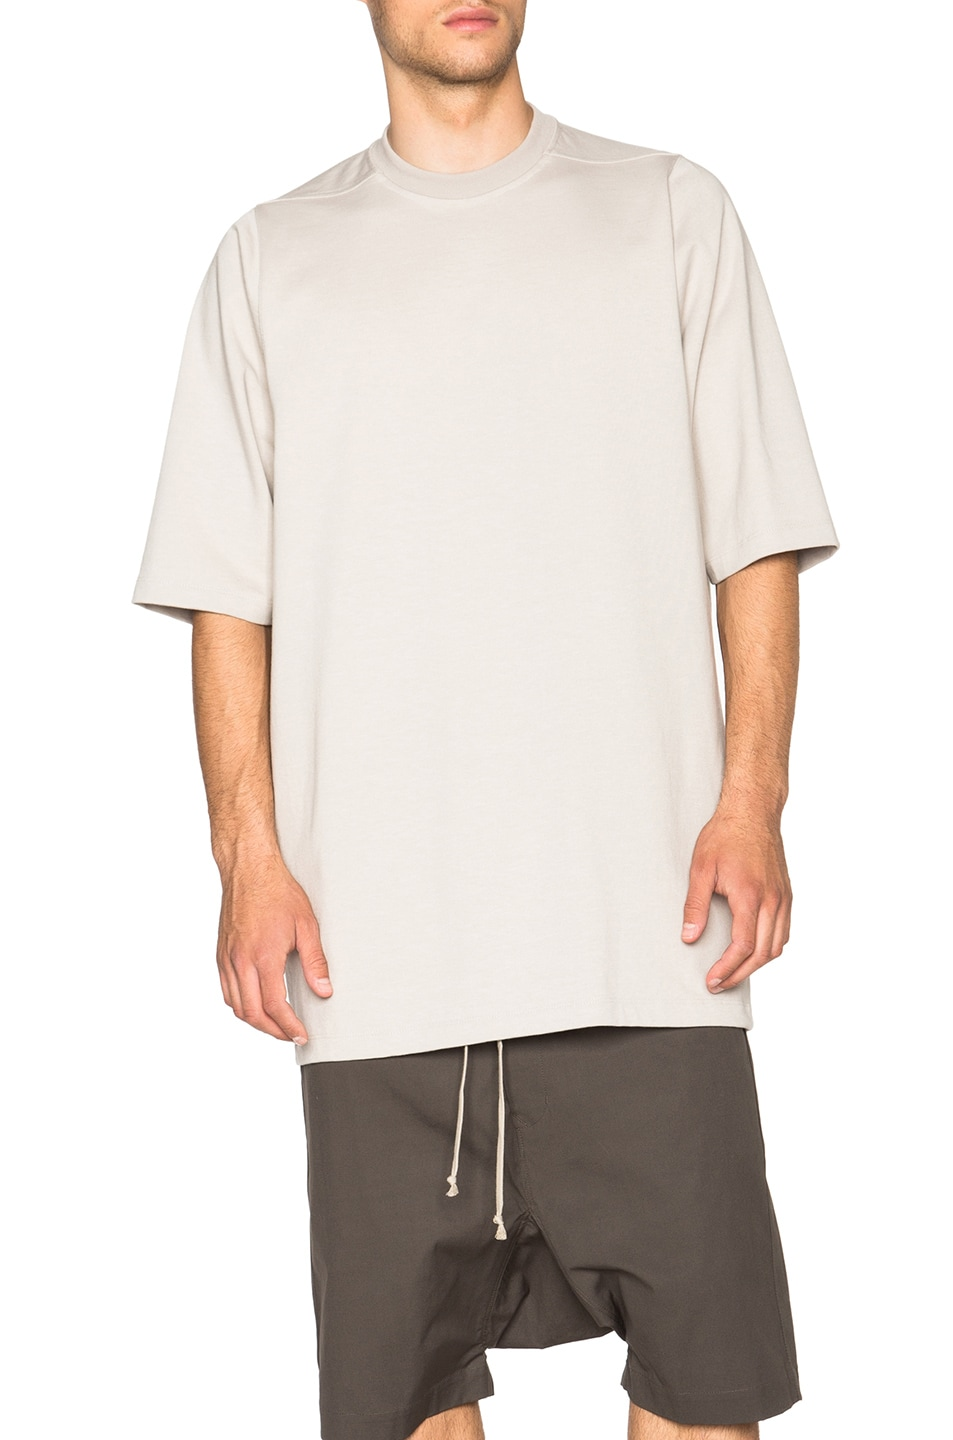 shortsleeved T-shirt - White Rick Owens Geniue Stockist Cheap Price Classic Online Clearance Ebay Buy Cheap Visa Payment Discount Limited Edition uSzXa5Ja3W